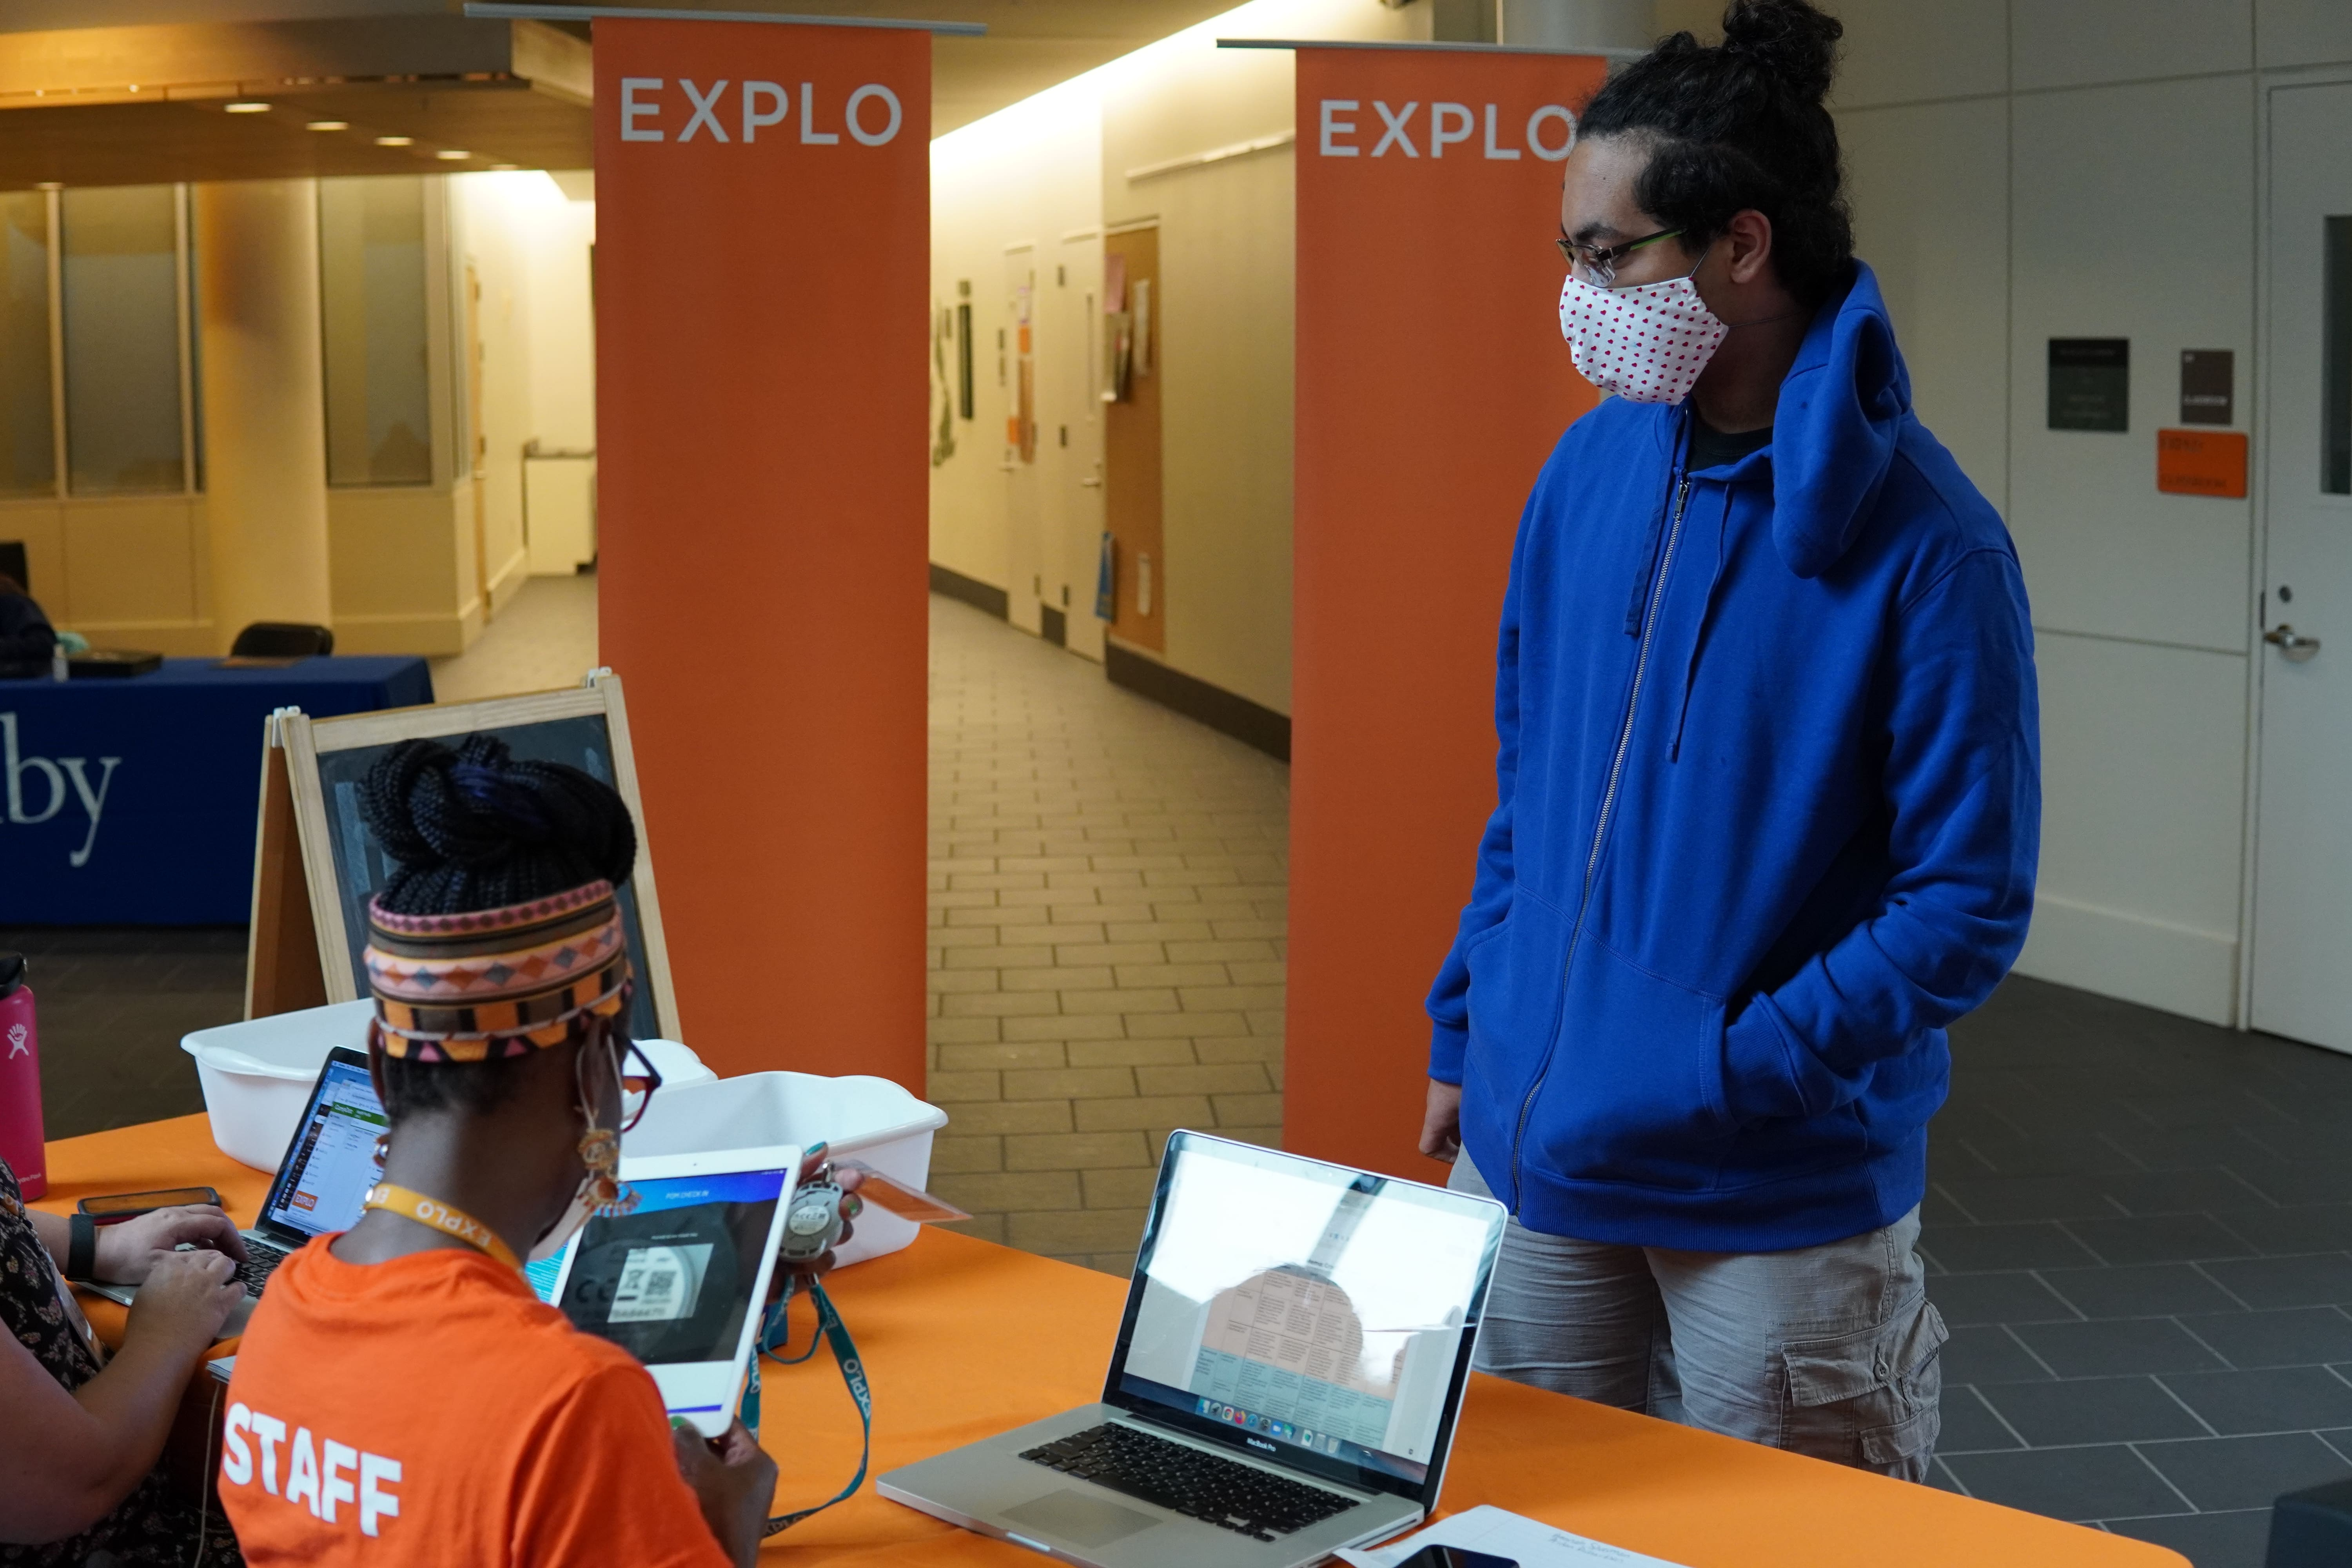 A student stands in front of the registration desk as they complete the final steps before they can go to their rooms and join the other students.